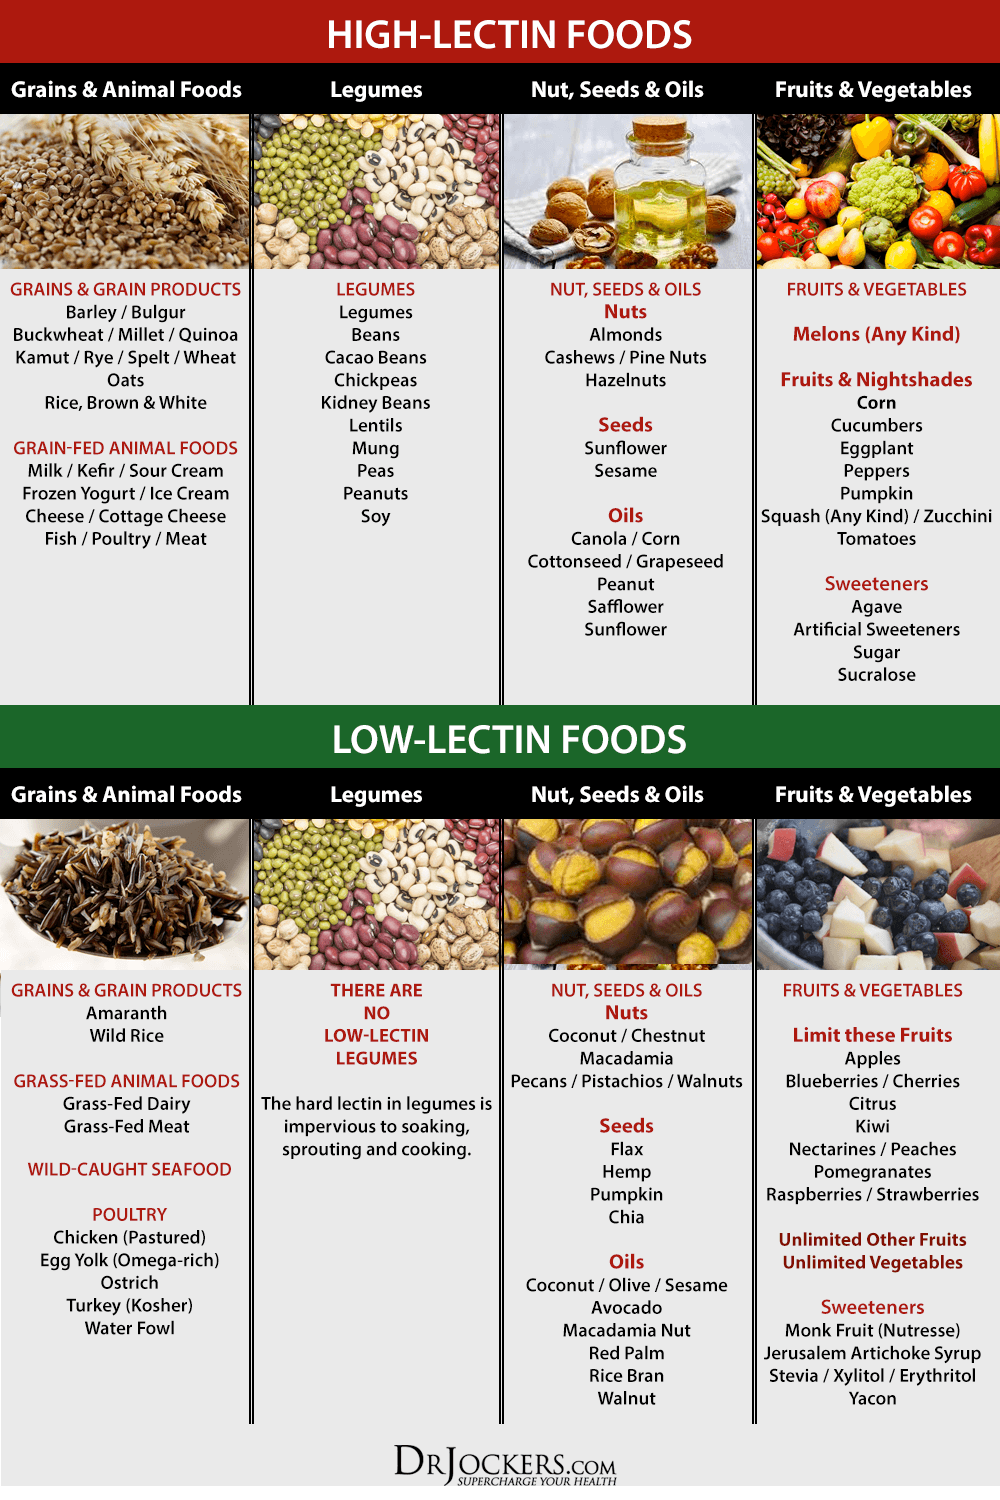 What Foods Should I Not Eat That Contain Lectins